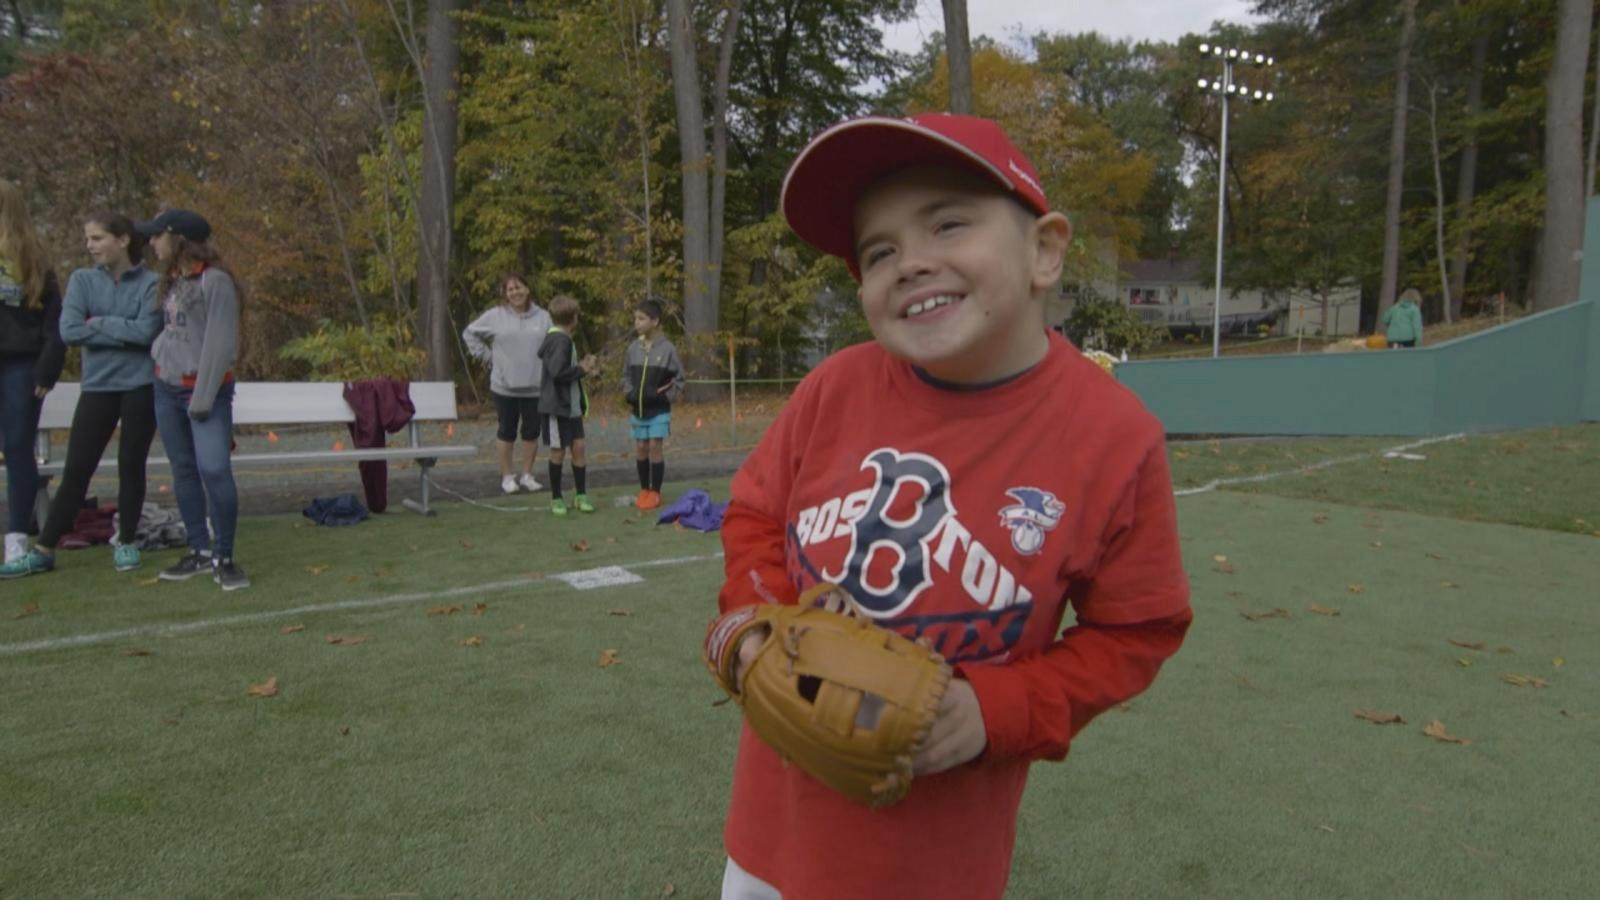 Thomas Hastings, 10, a diehard Red Sox fan, has muscular dystrophy and wanted a place to play baseball.